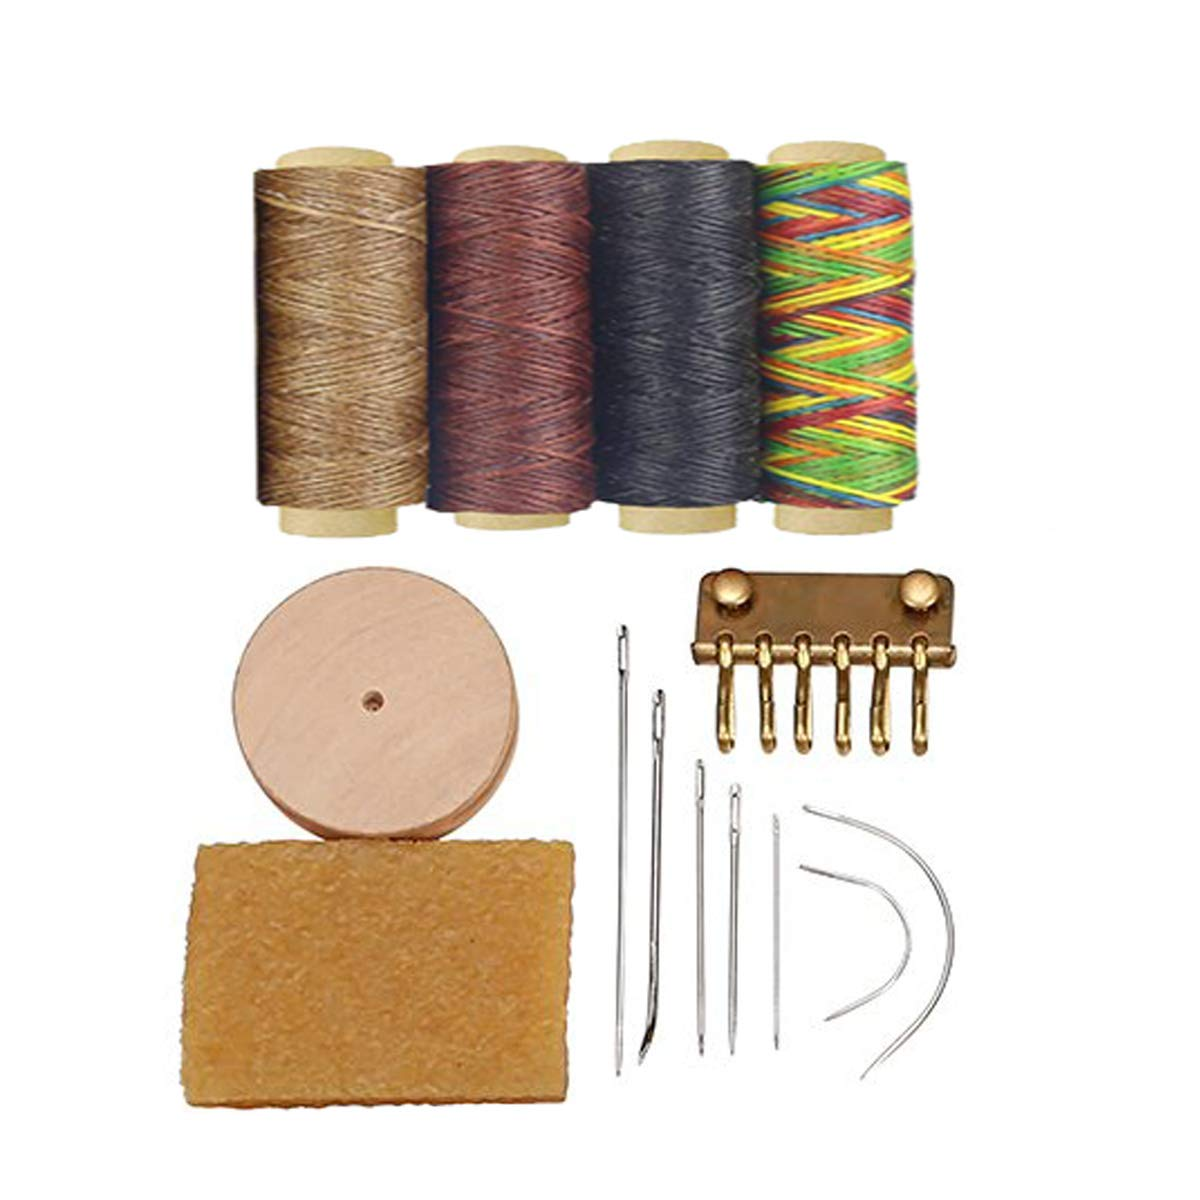 Rivets Kit and Professional Stitching Sewing Tools for DIY Leathercraft Snaps Prong Punch Stitching Groover Leathercraft Working Tools Kit Leather Craft Stamping Tools with Cutting Mat